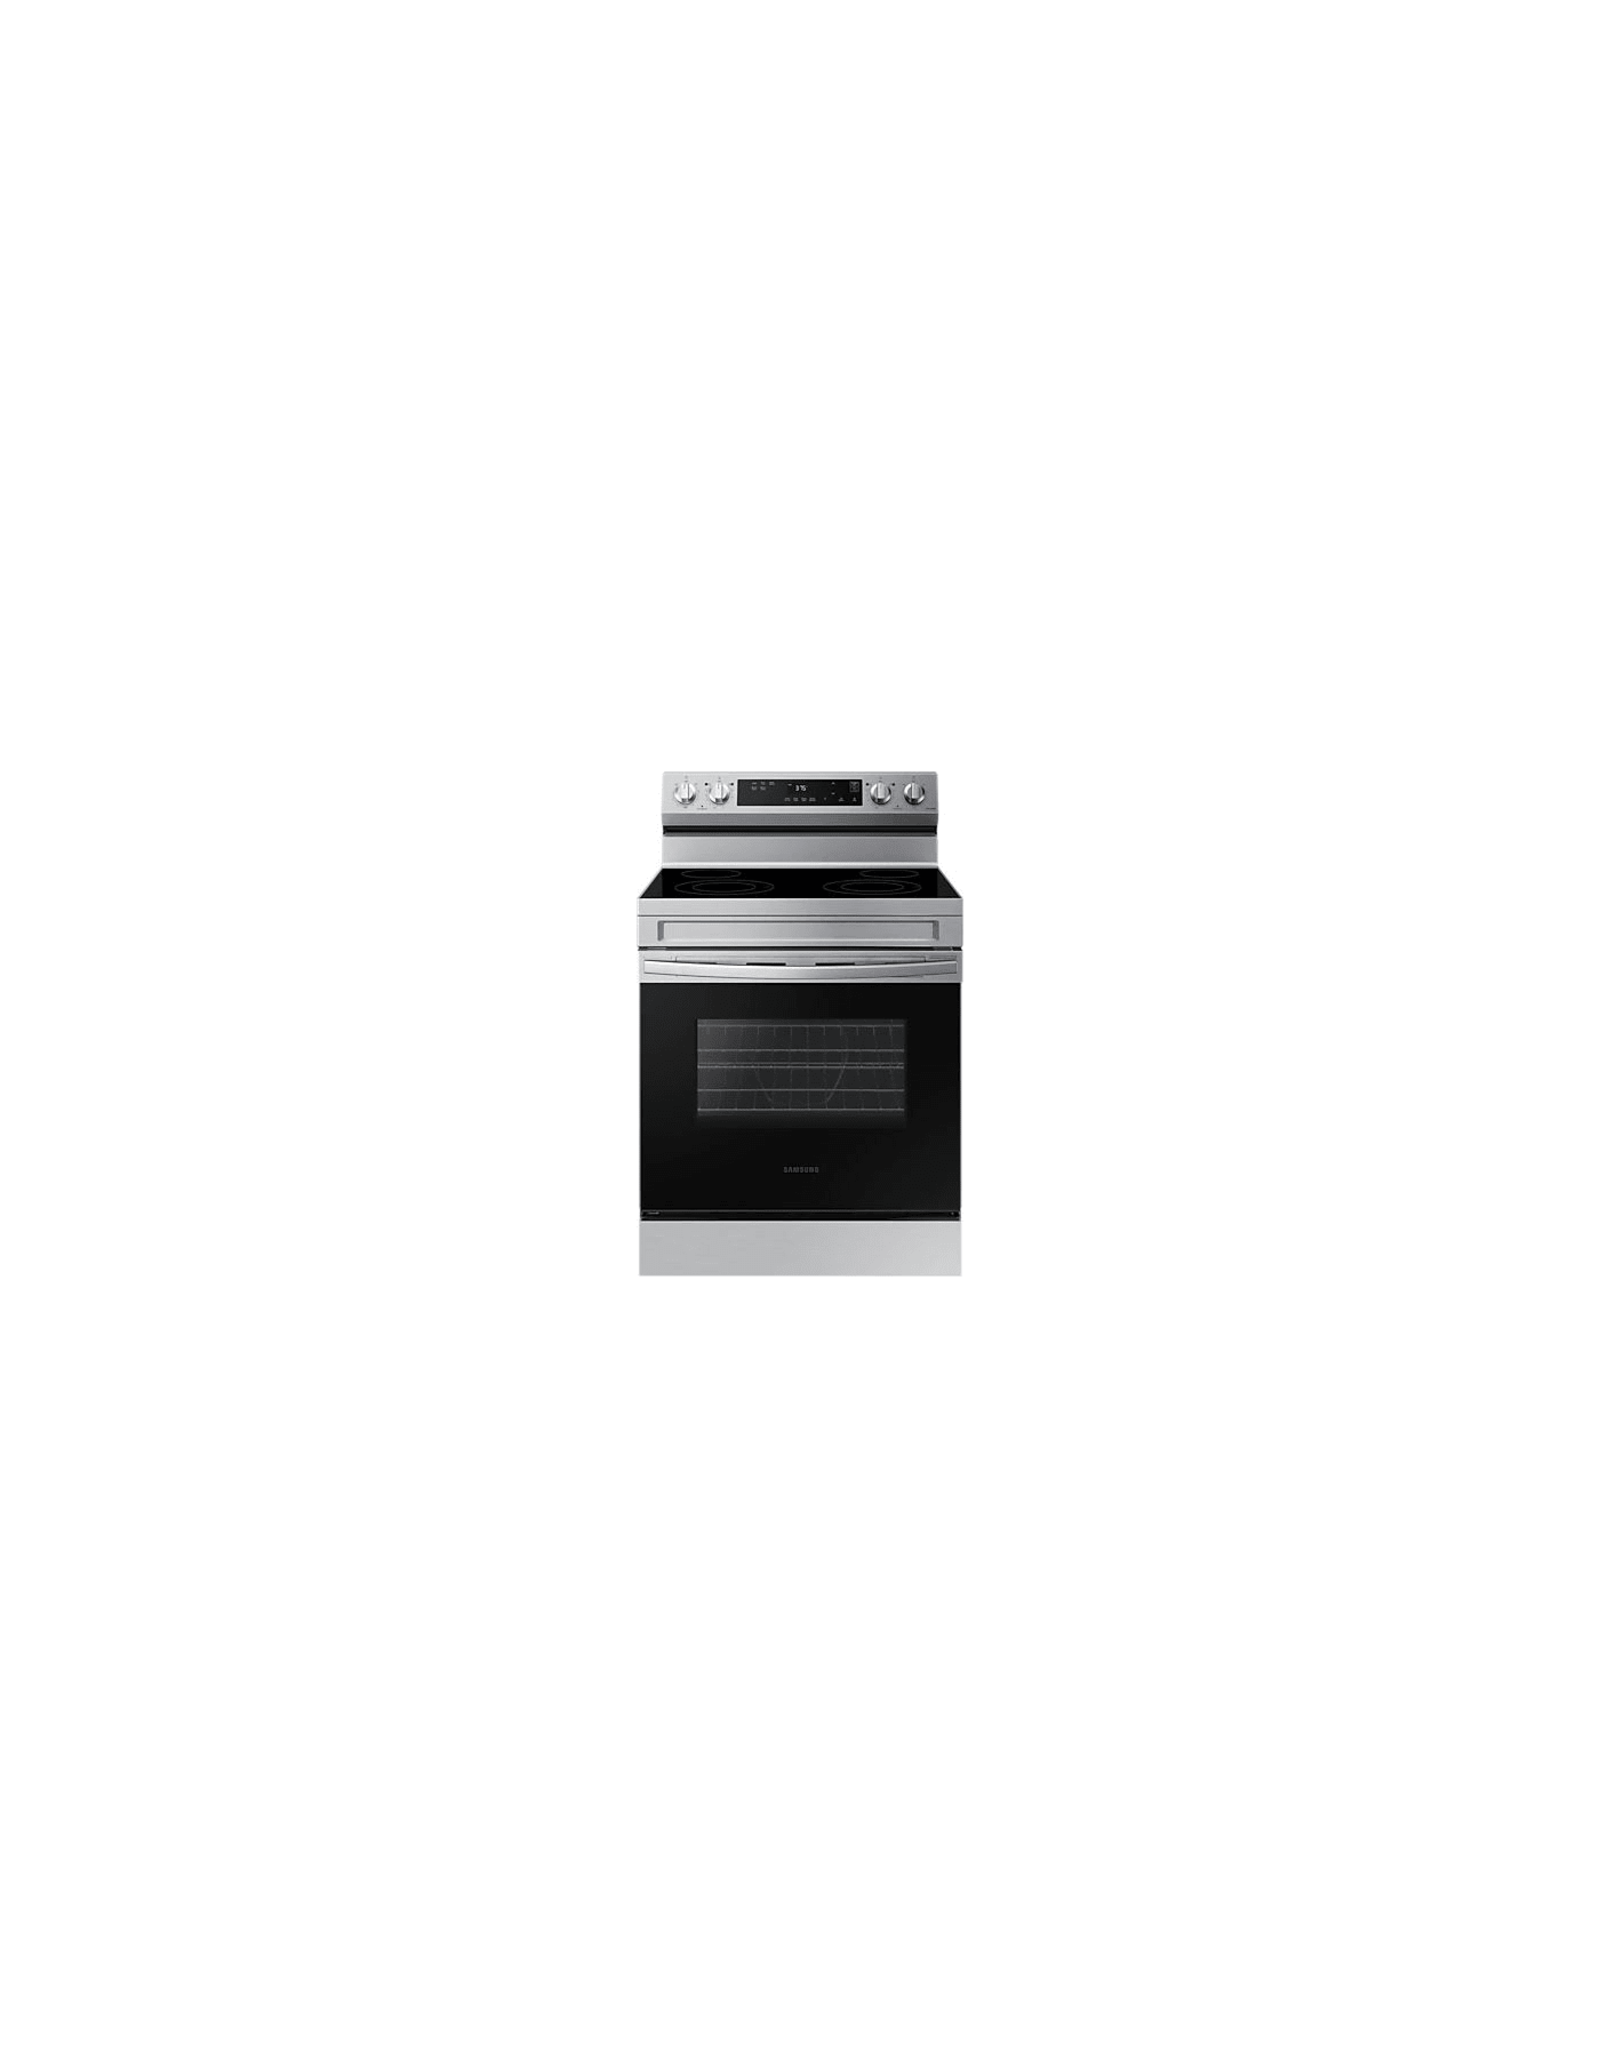 LG Electronics NE63A6111SS 6.3 cu. ft. Smart Freestanding Electric Range with Steam Clean in Stainless Stee